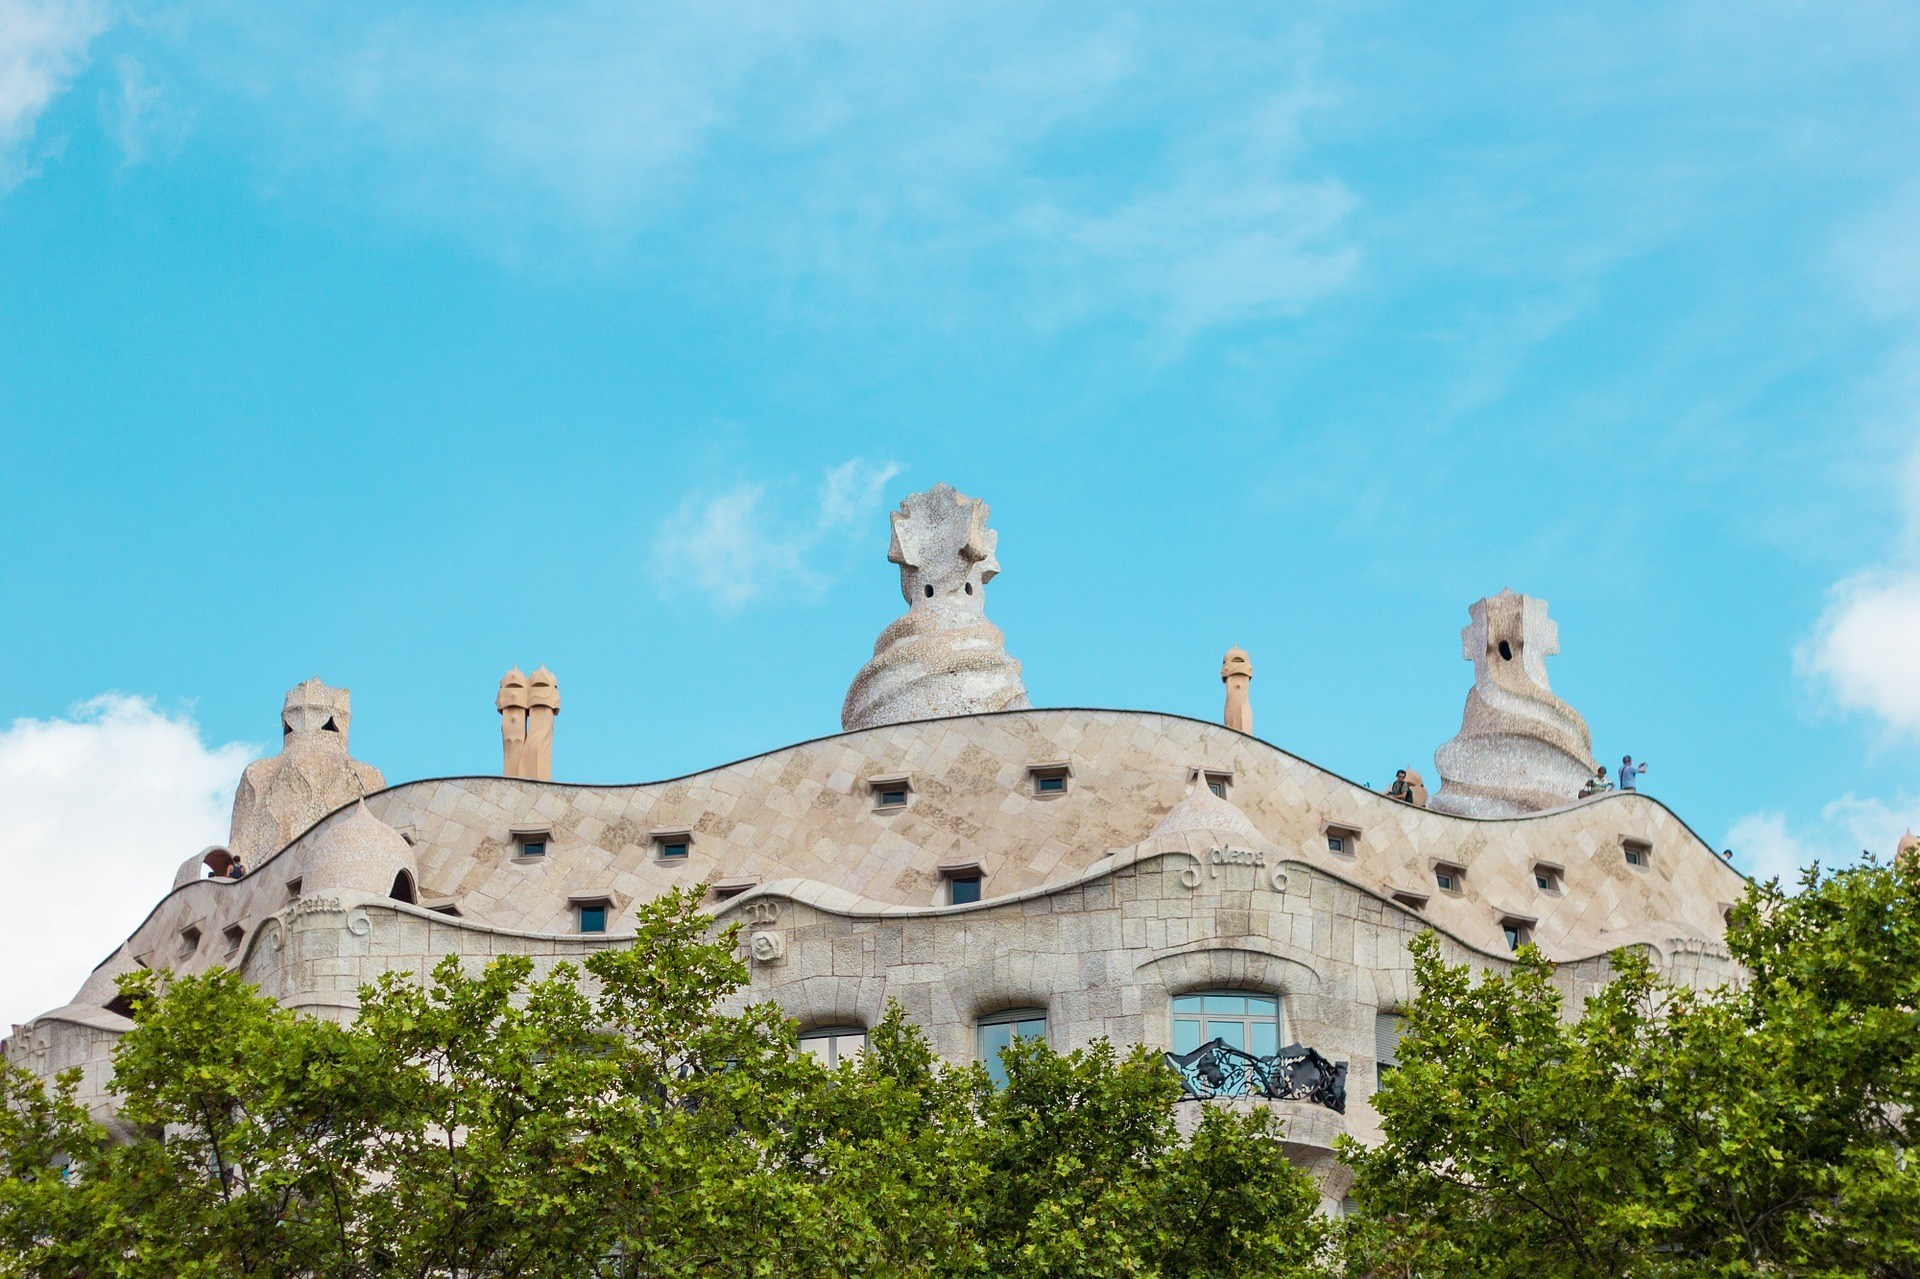 Visiting Barcelona: 5 Places Not to Miss - Gaudi